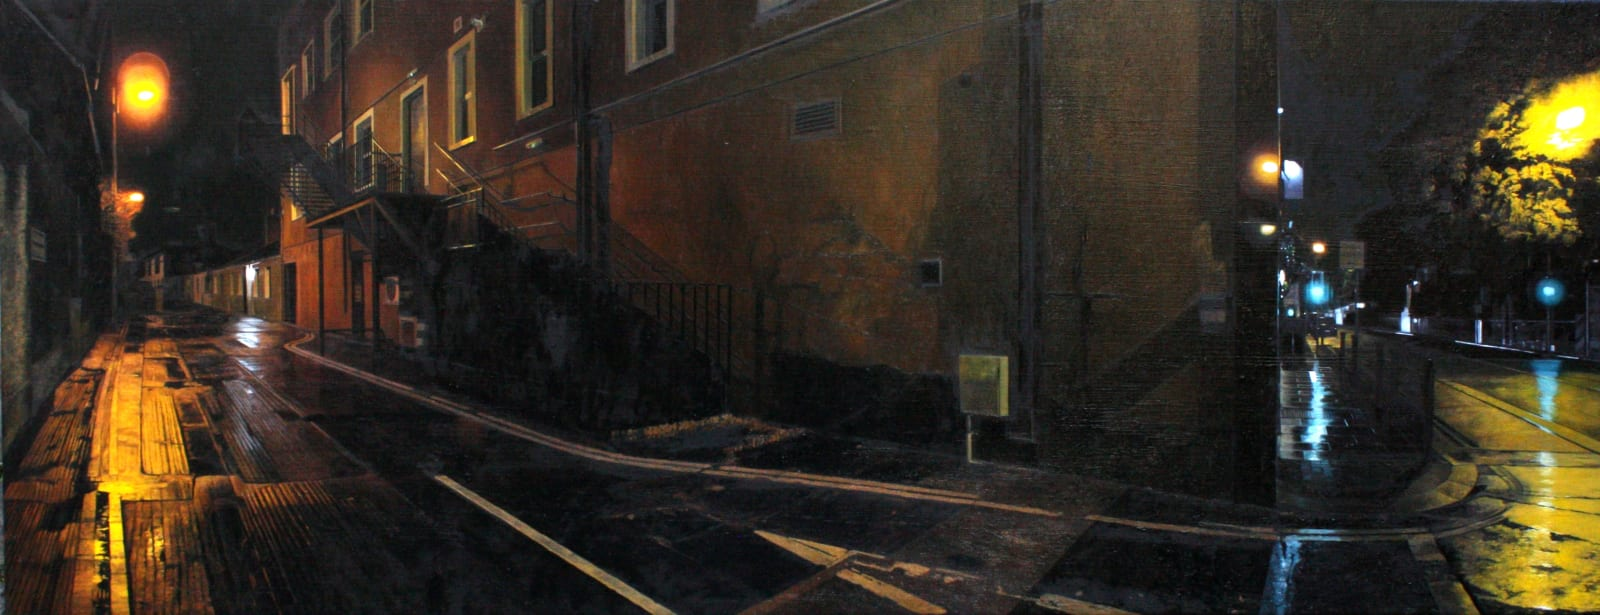 Francis Matthews Ranelagh Oil on canvas 50 x 130 cm